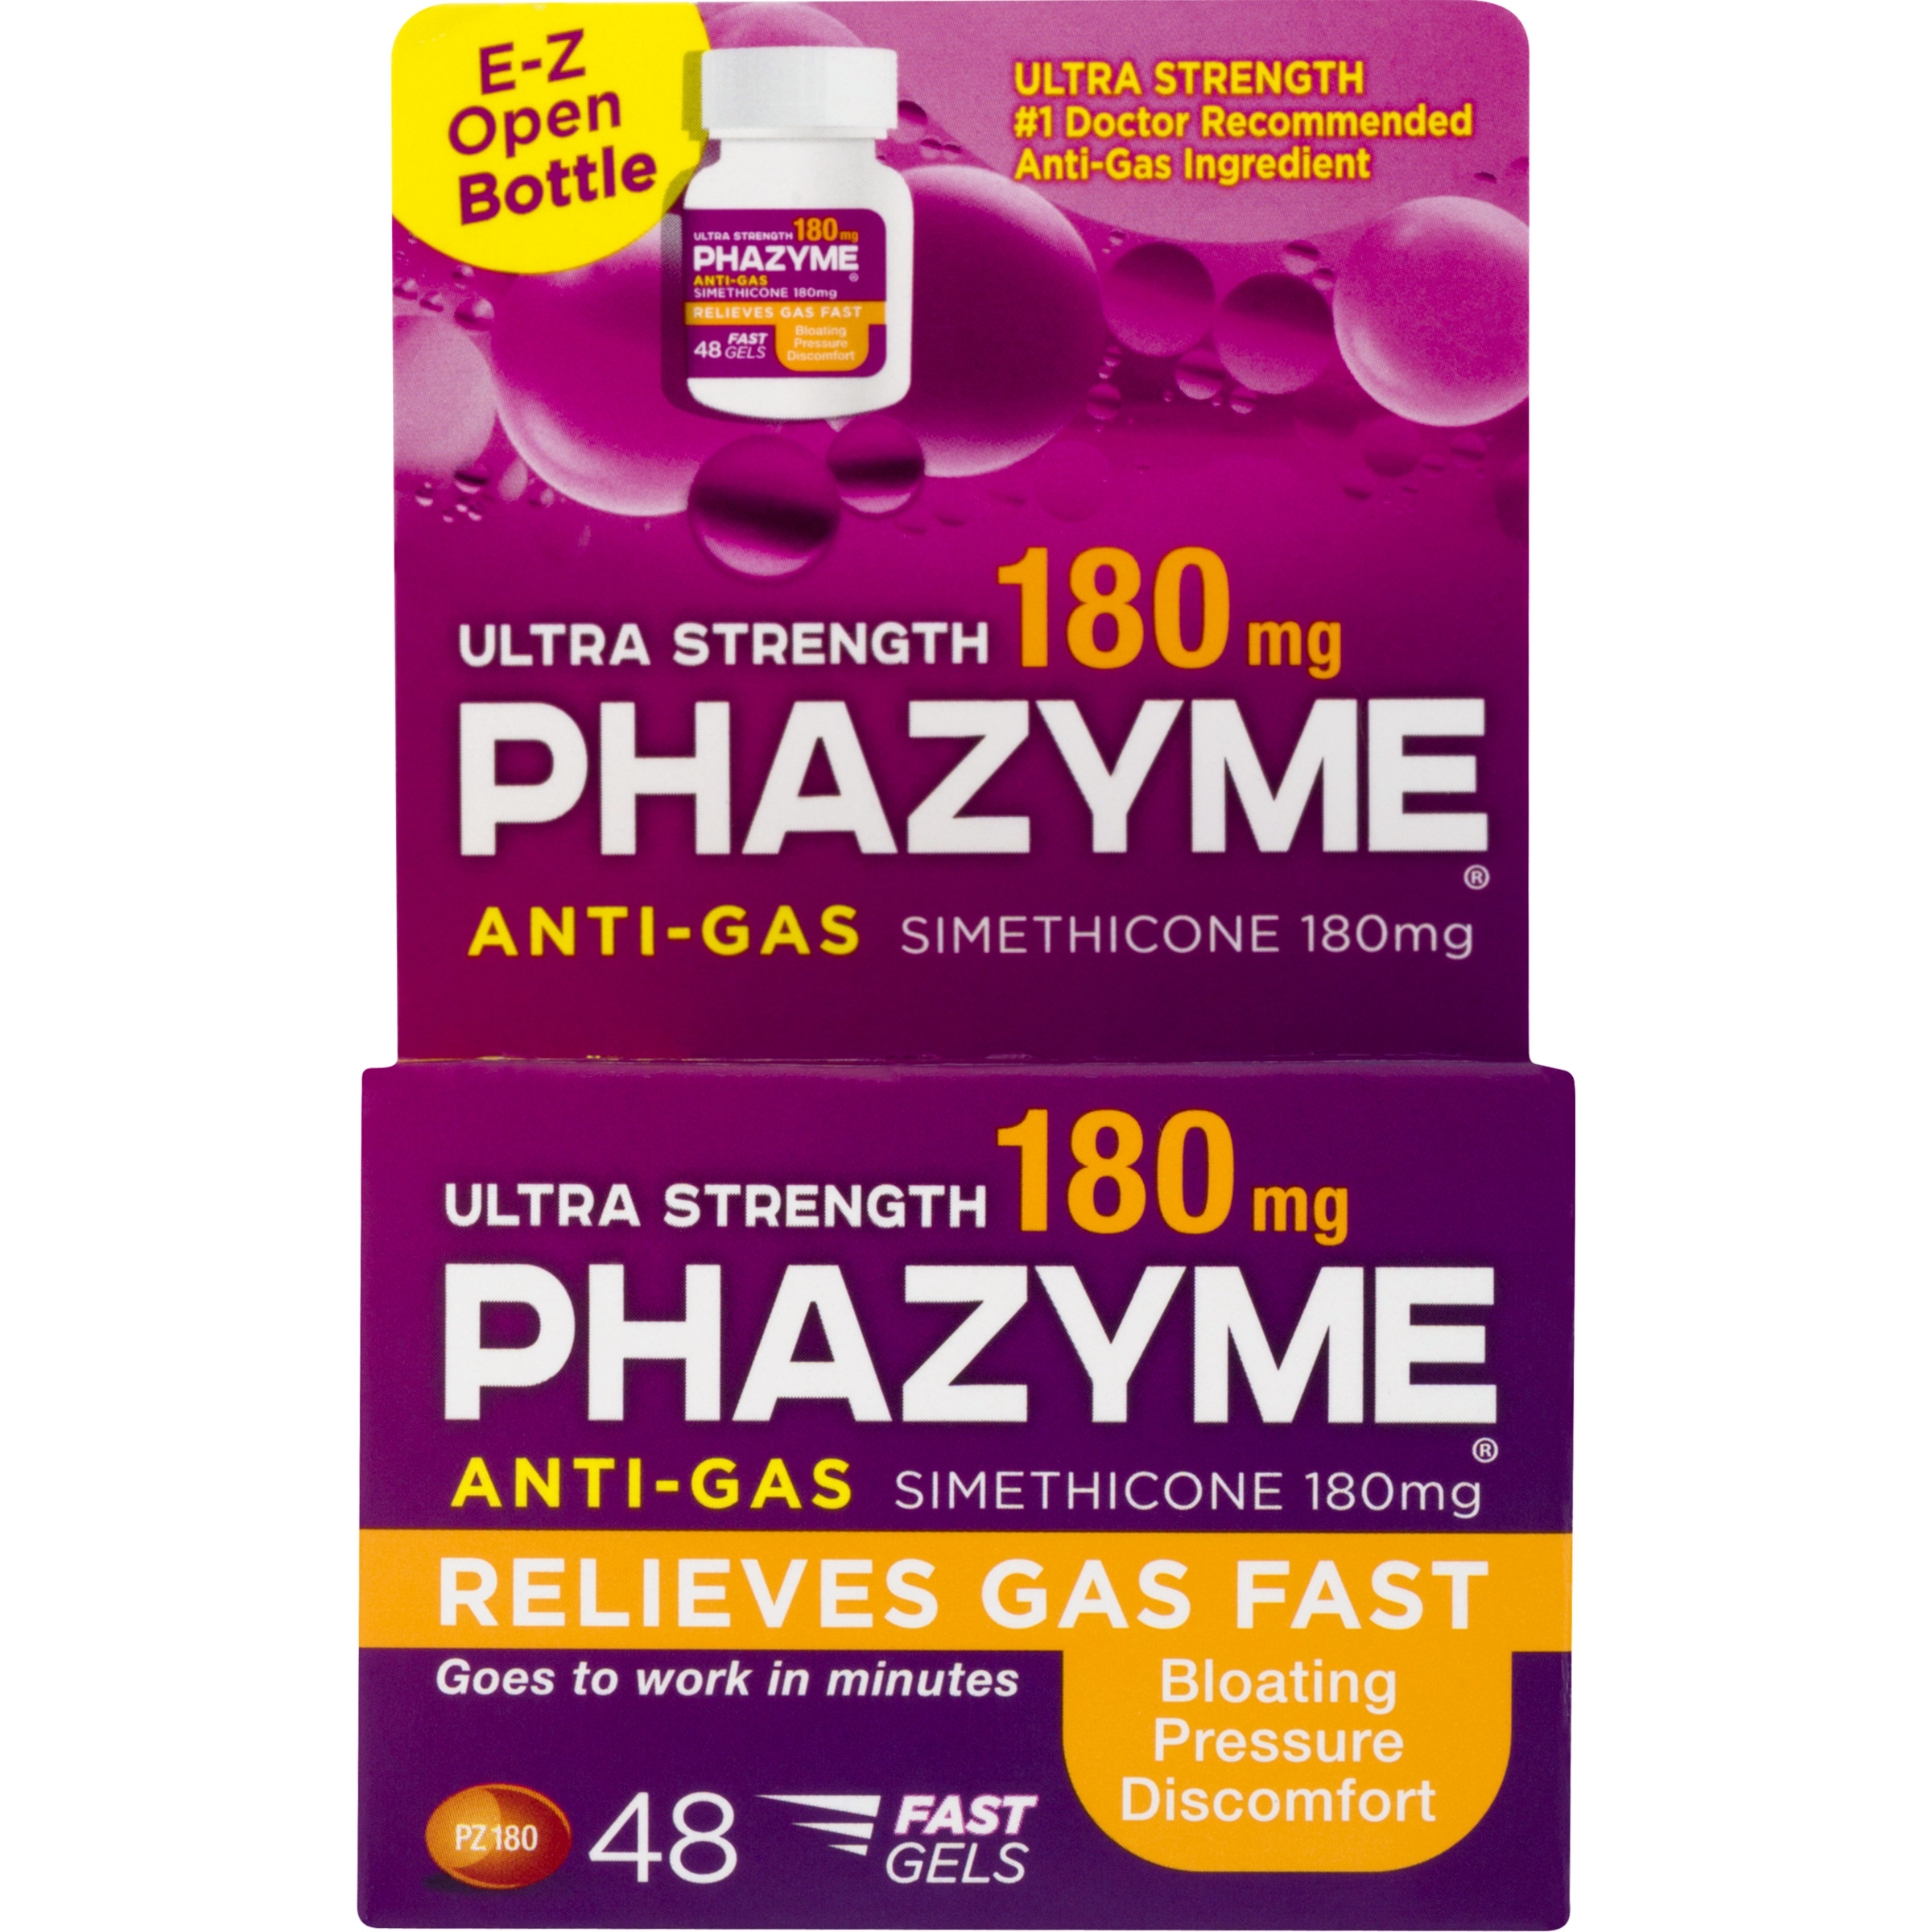 Phazyme Ultra Strength Gas and Bloating Relief, 180 mg, 48 FAST GELS